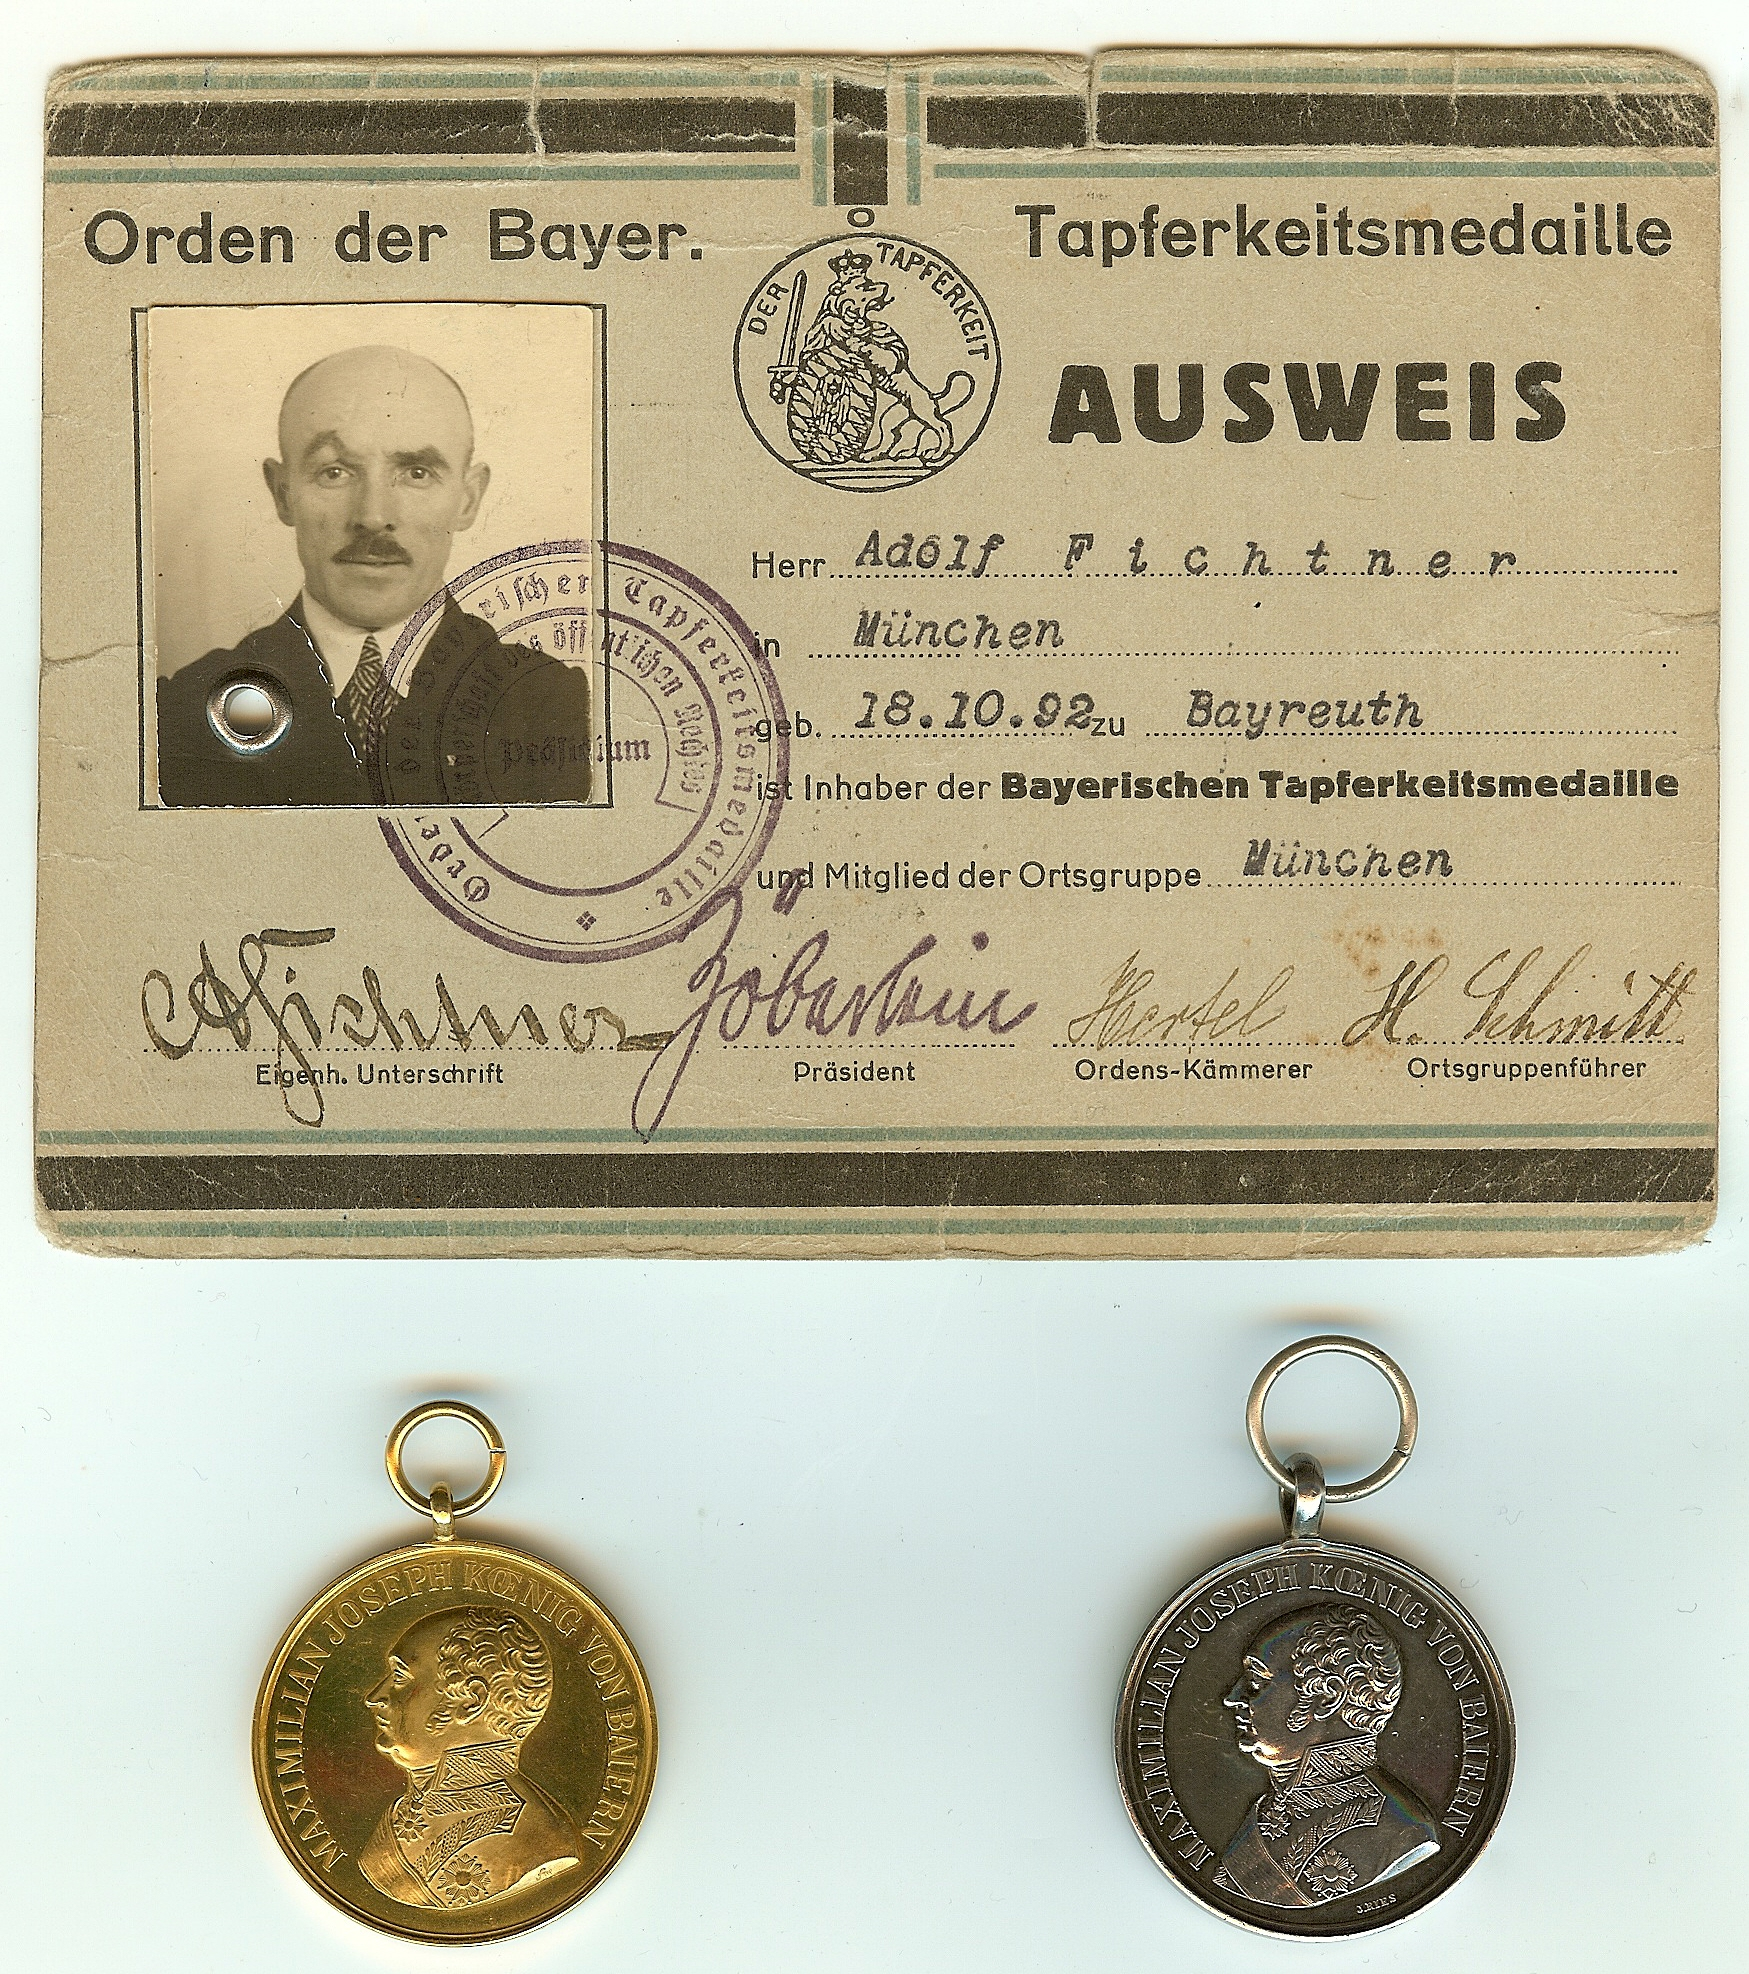 Figure 1-Orden der Bayerischen Tapferkeitsmedaille Ausweis (indentification) and Bavarian Bravery Medals of Adolf Fichtner. Image from author's archive.